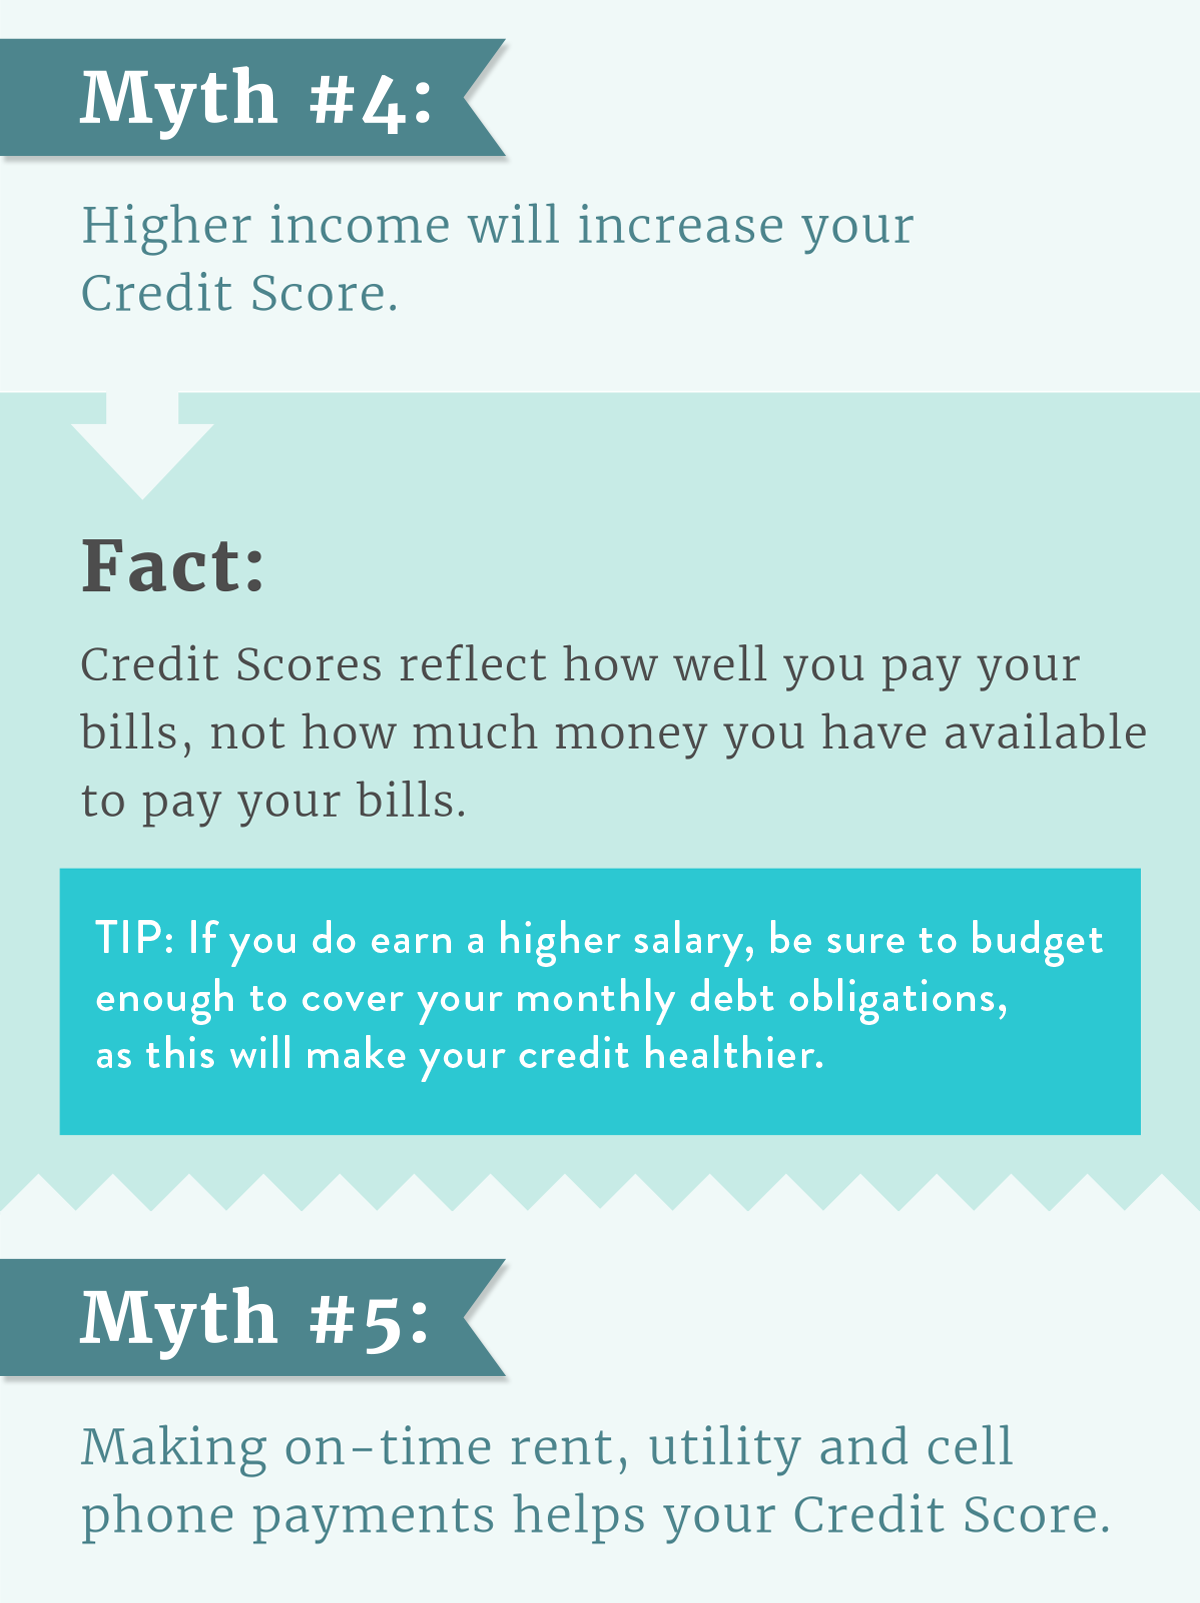 Myth 4: Higher income will increase your Credit Score.